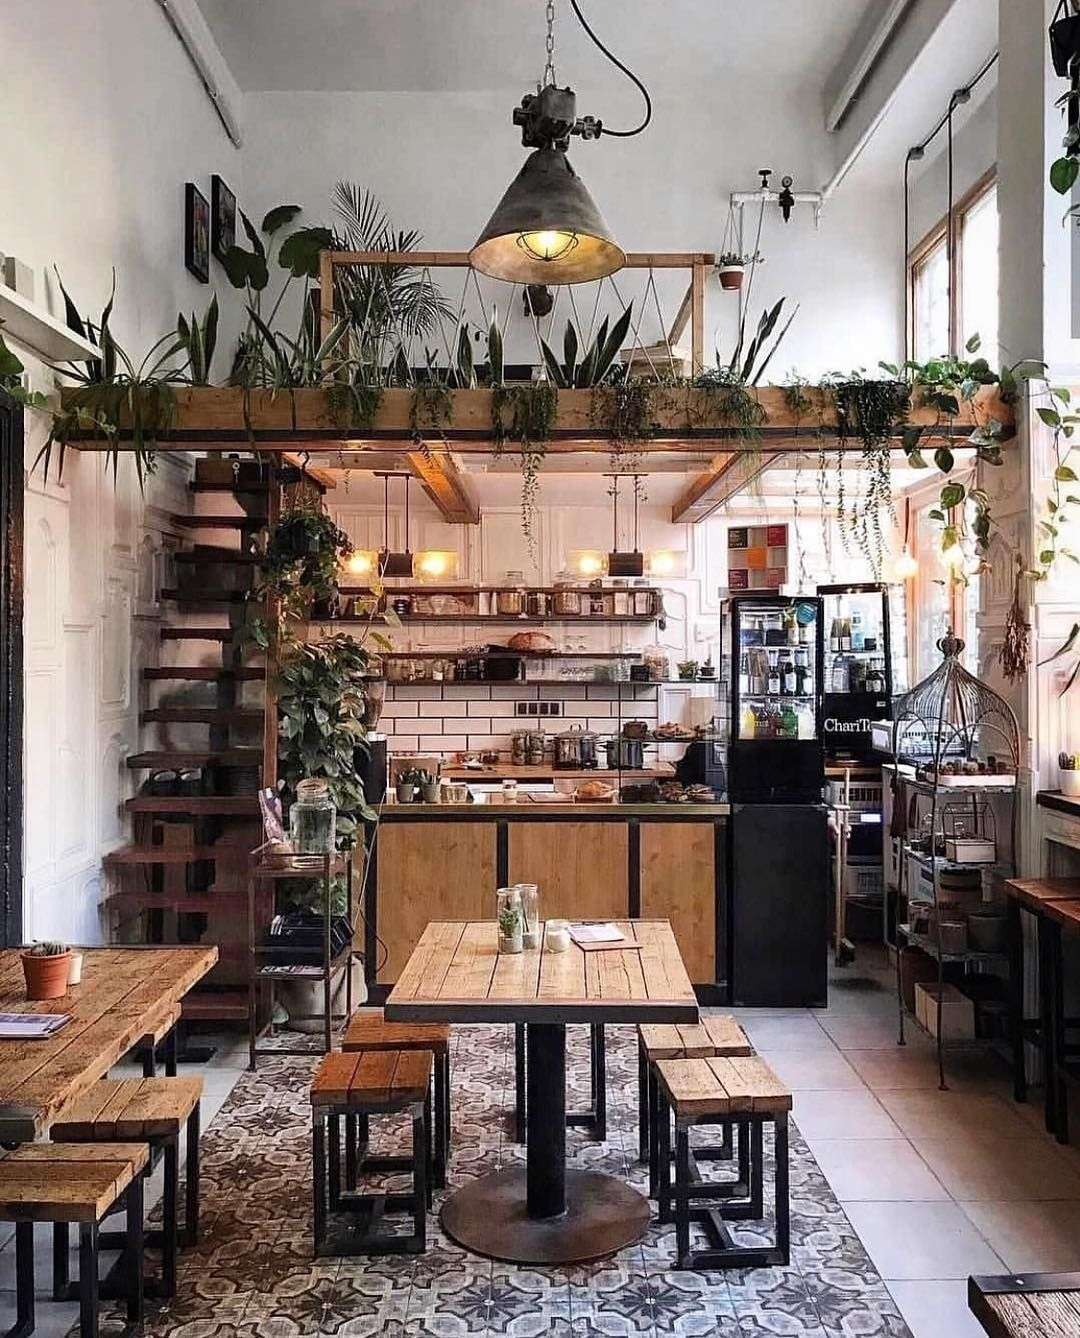 Tiny coffee shop in Cape Town, South Africa. Meyer ...